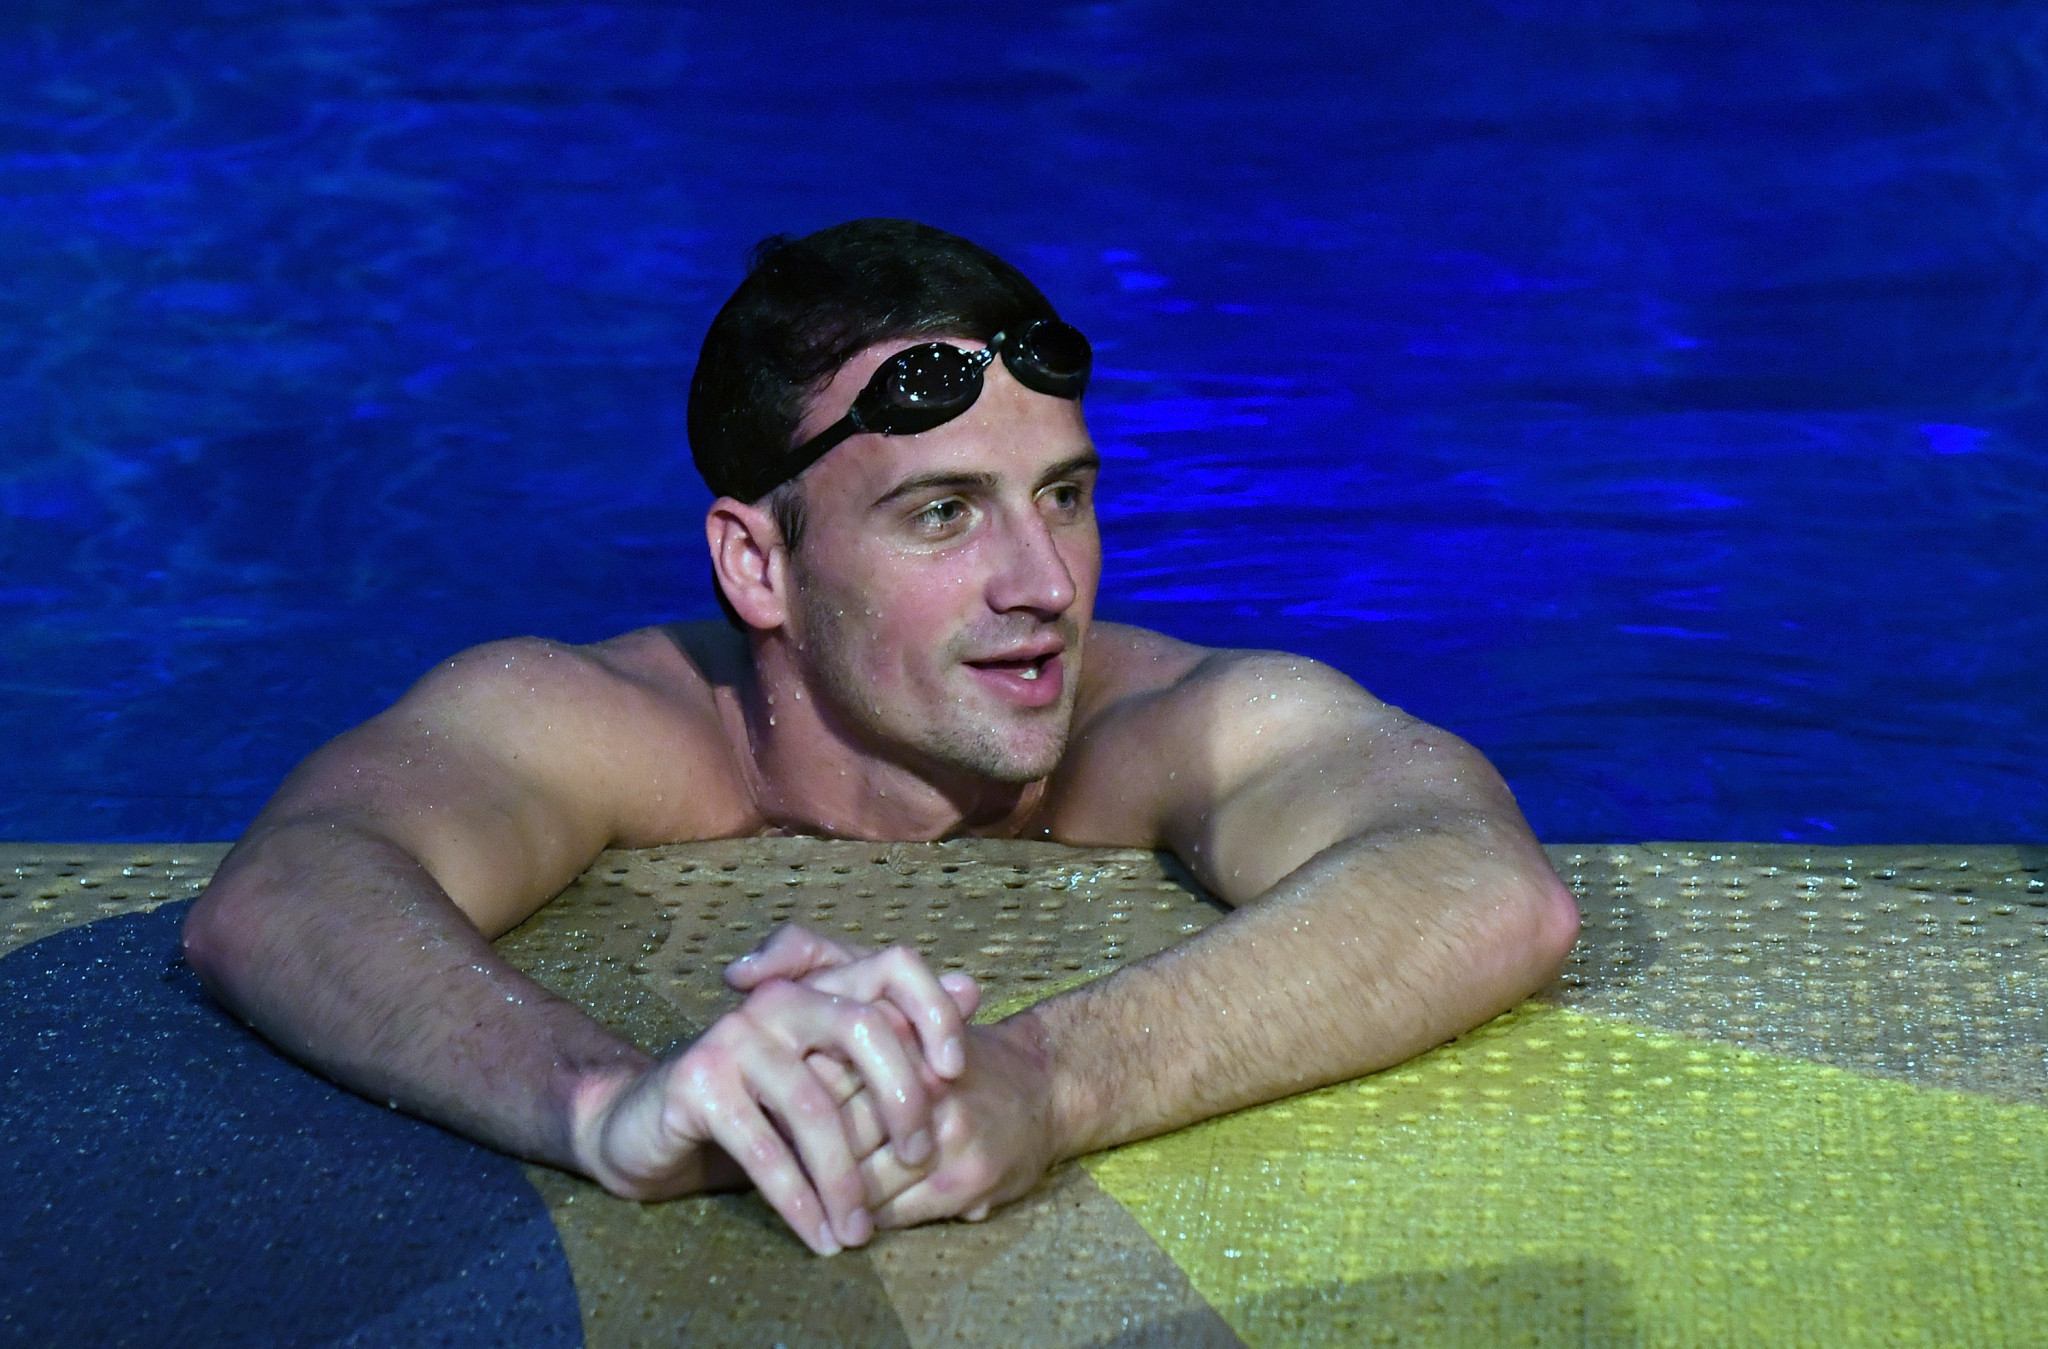 Brazilian prosecutor rules in favour of re-opening criminal case against Lochte